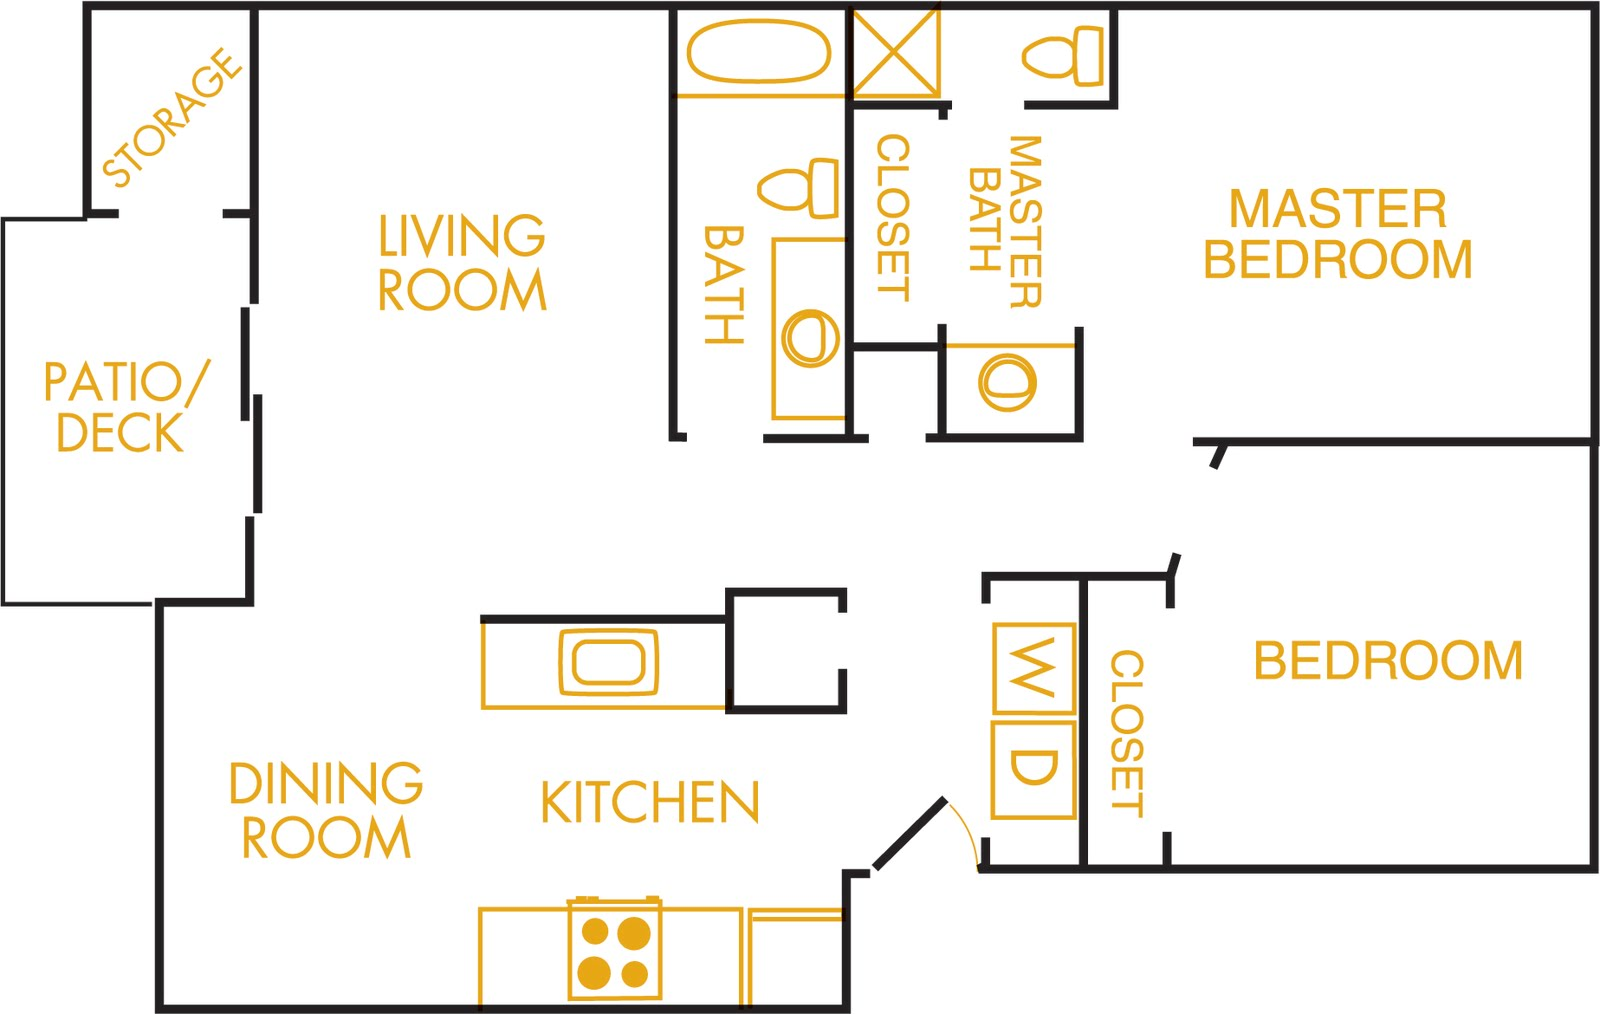 amber park apartments: click on the floorplan for a better view!